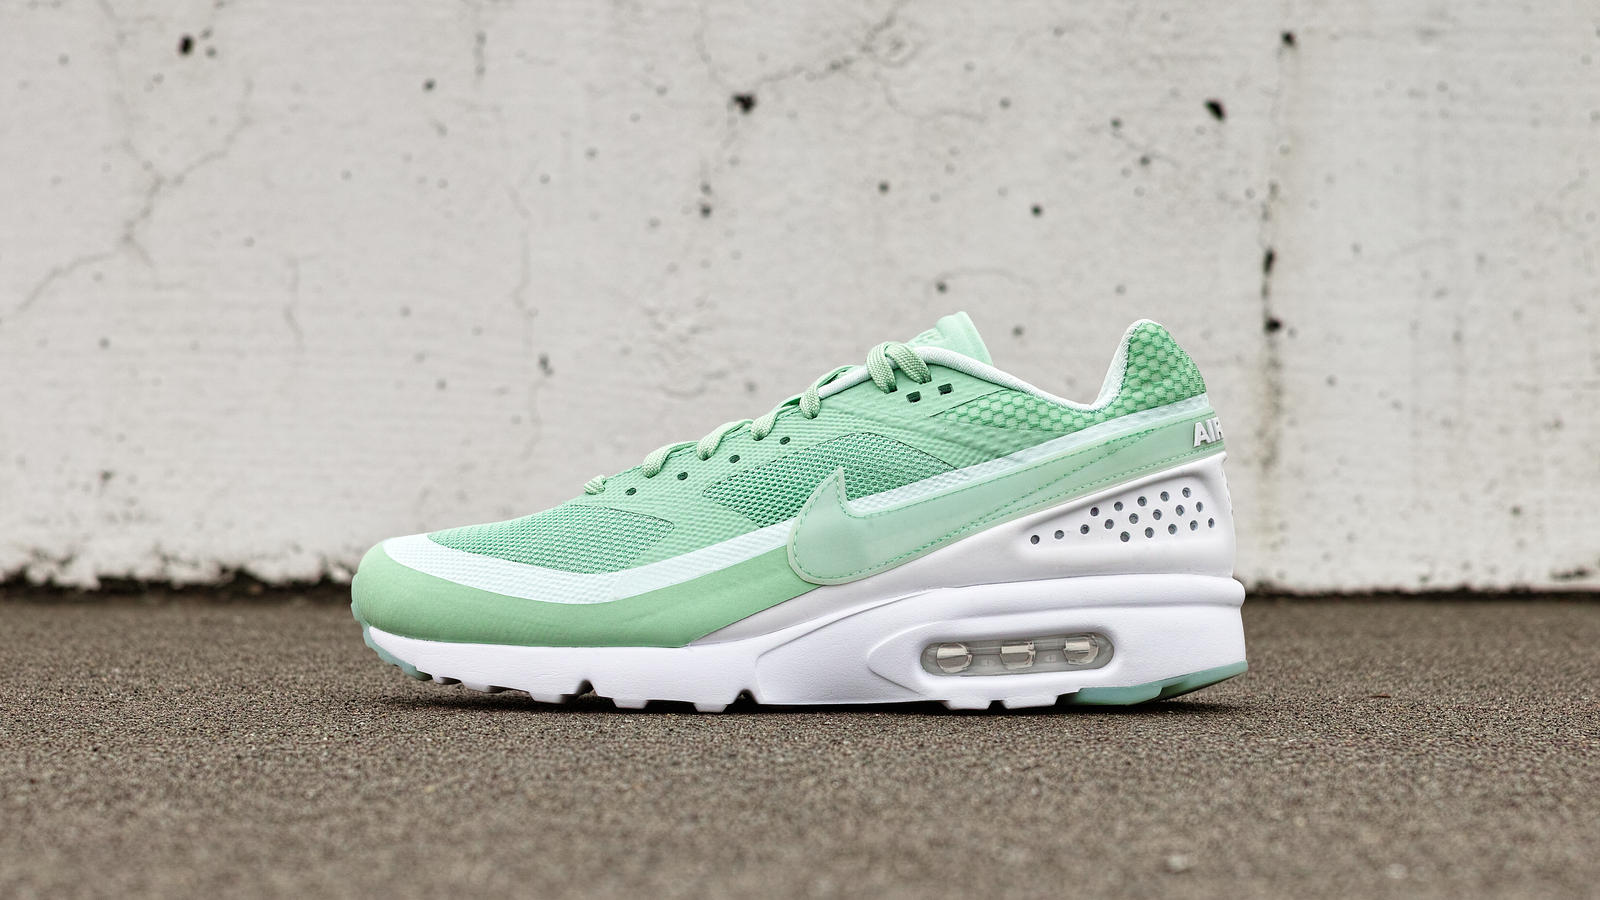 Air max bw mint 1 hd 1600